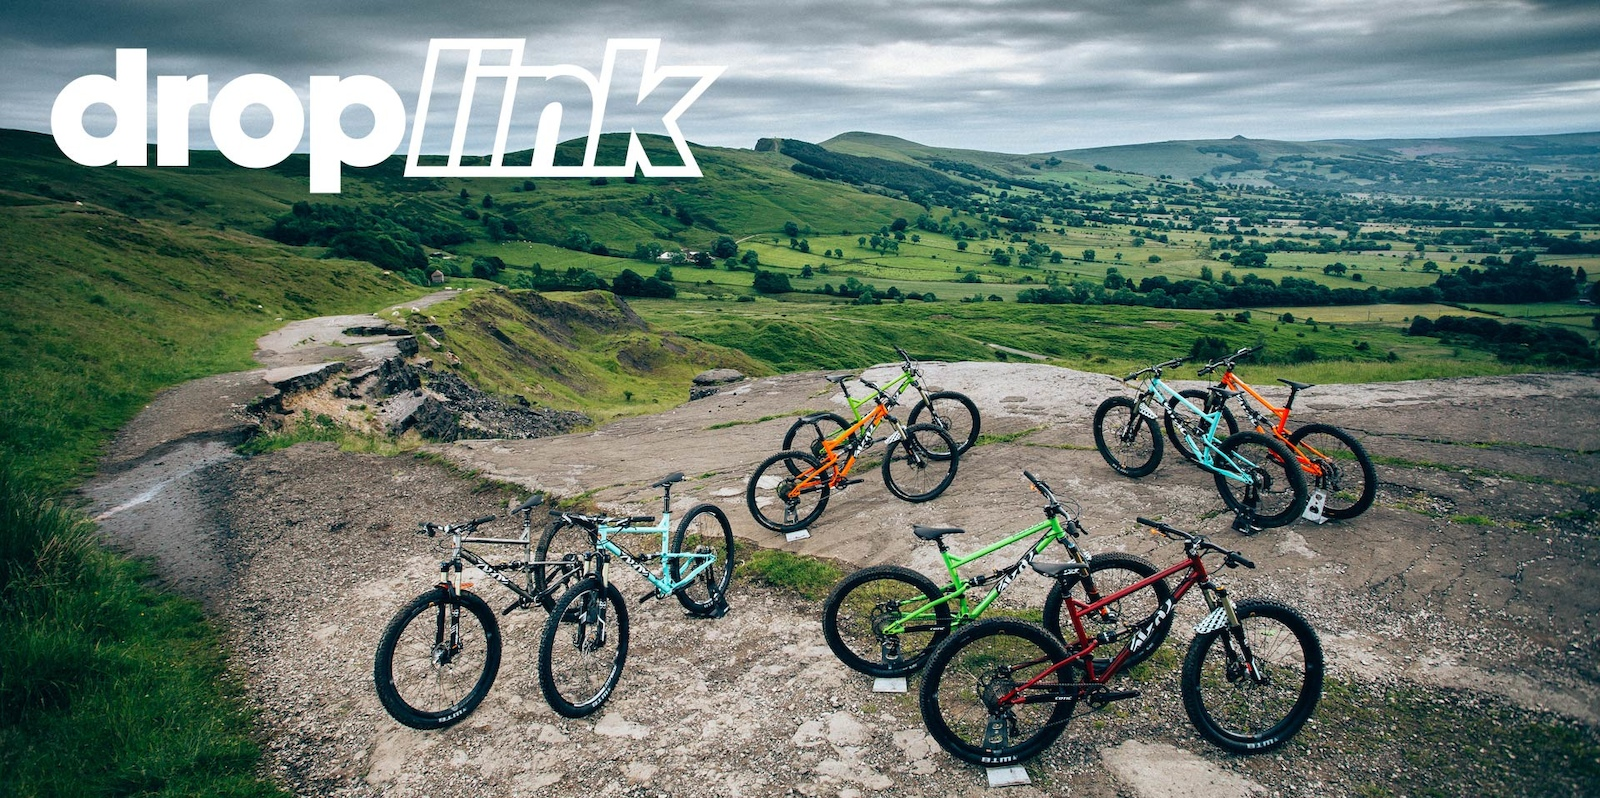 The 2016 Cotic droplink range. Available now.